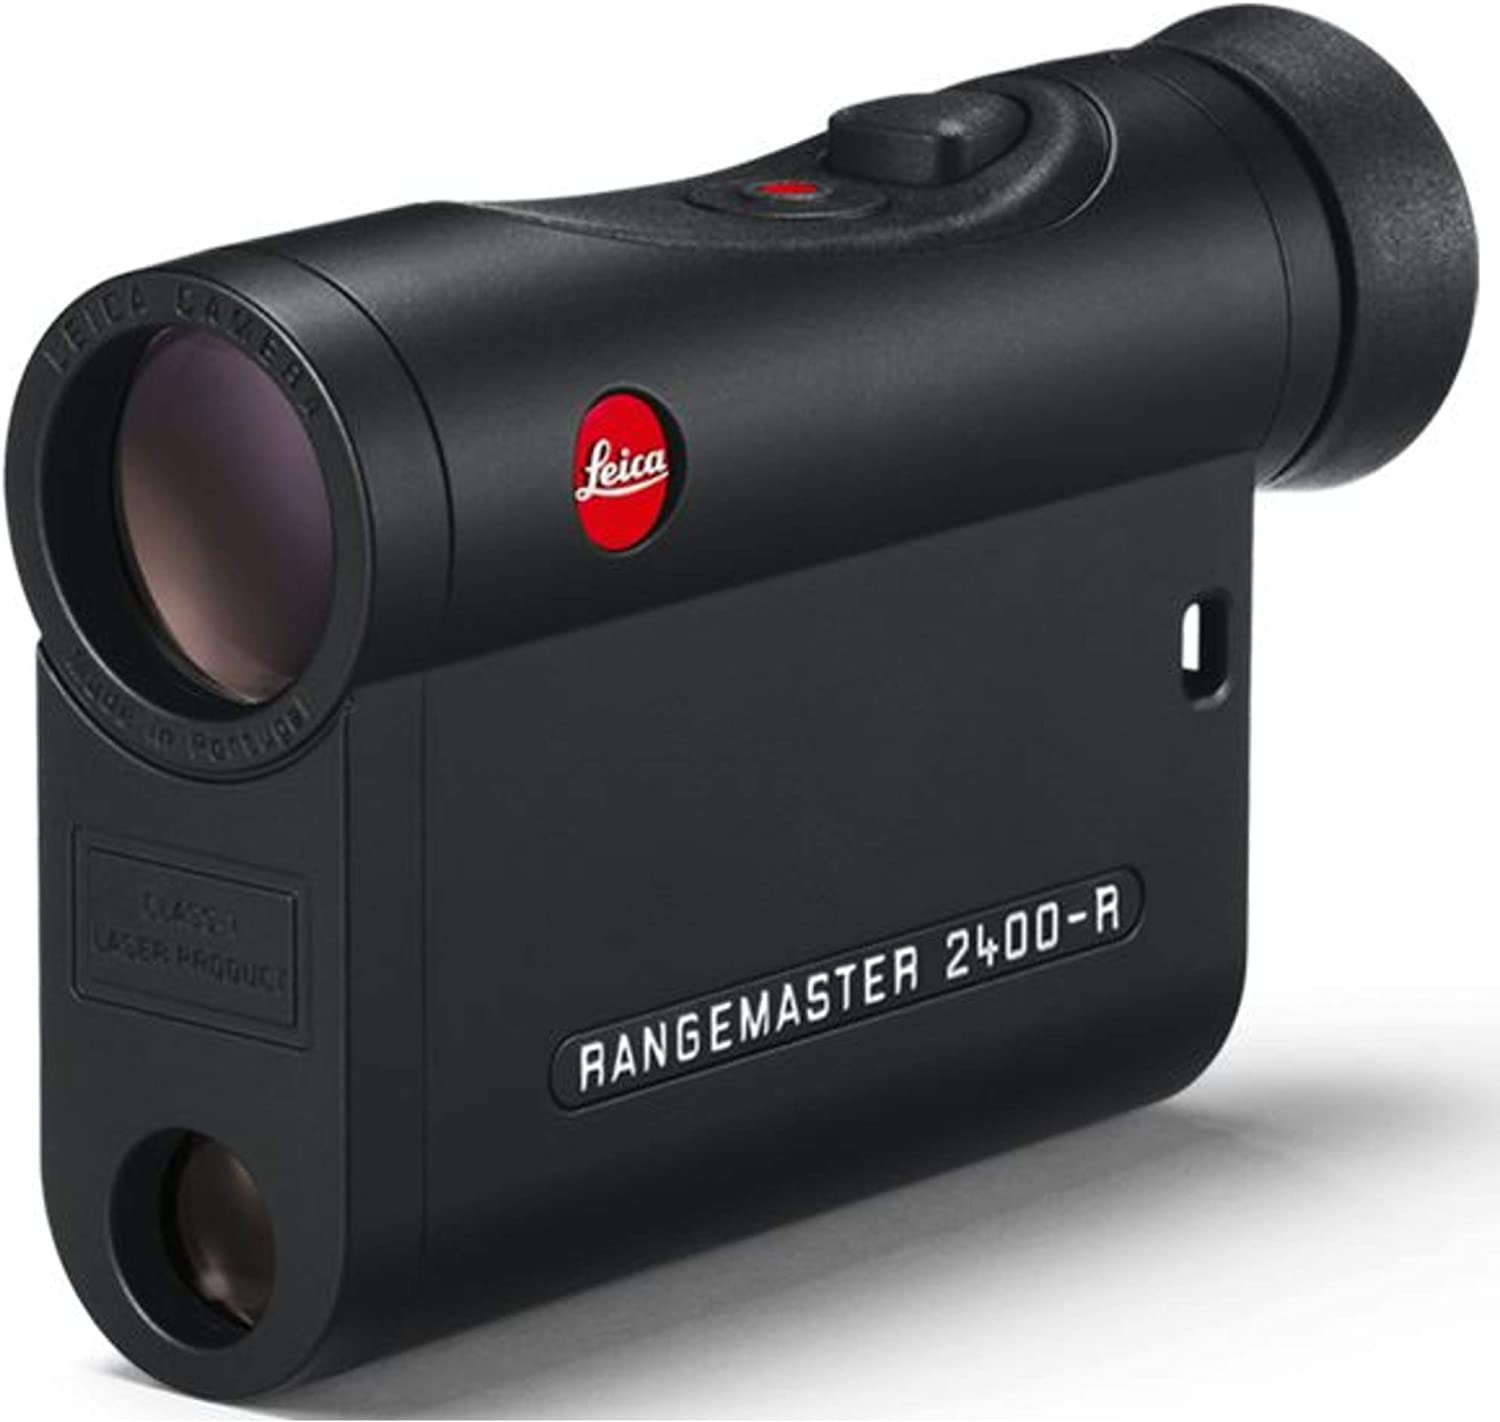 Leica RangeMaster CRF Lowest price challenge 2400-R Cheap mail order specialty store